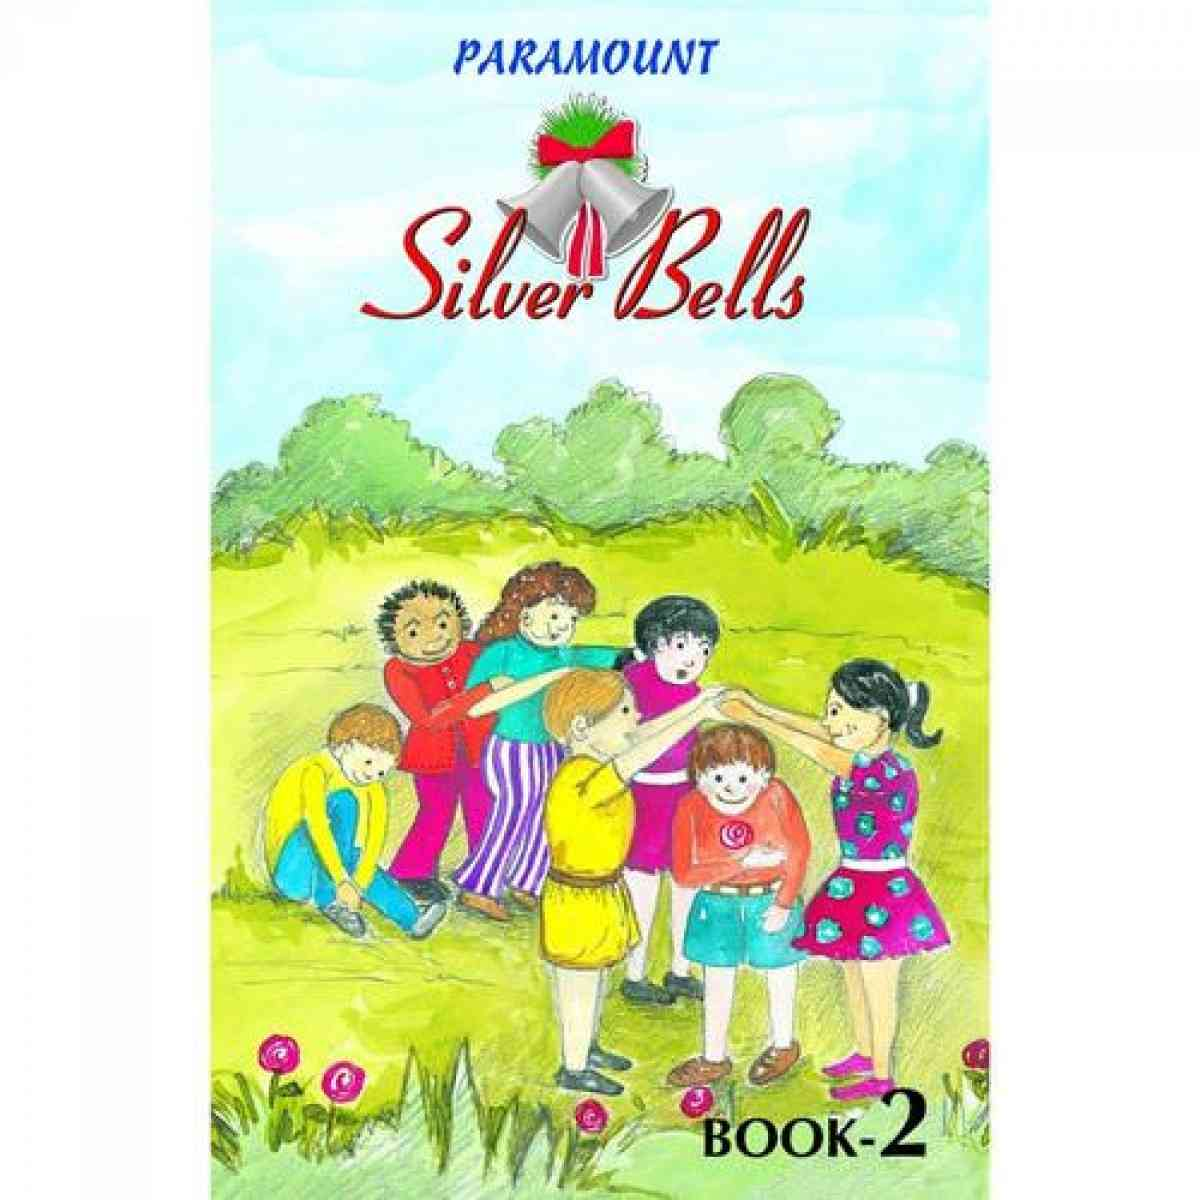 Paramount Silver Bells: Book 2